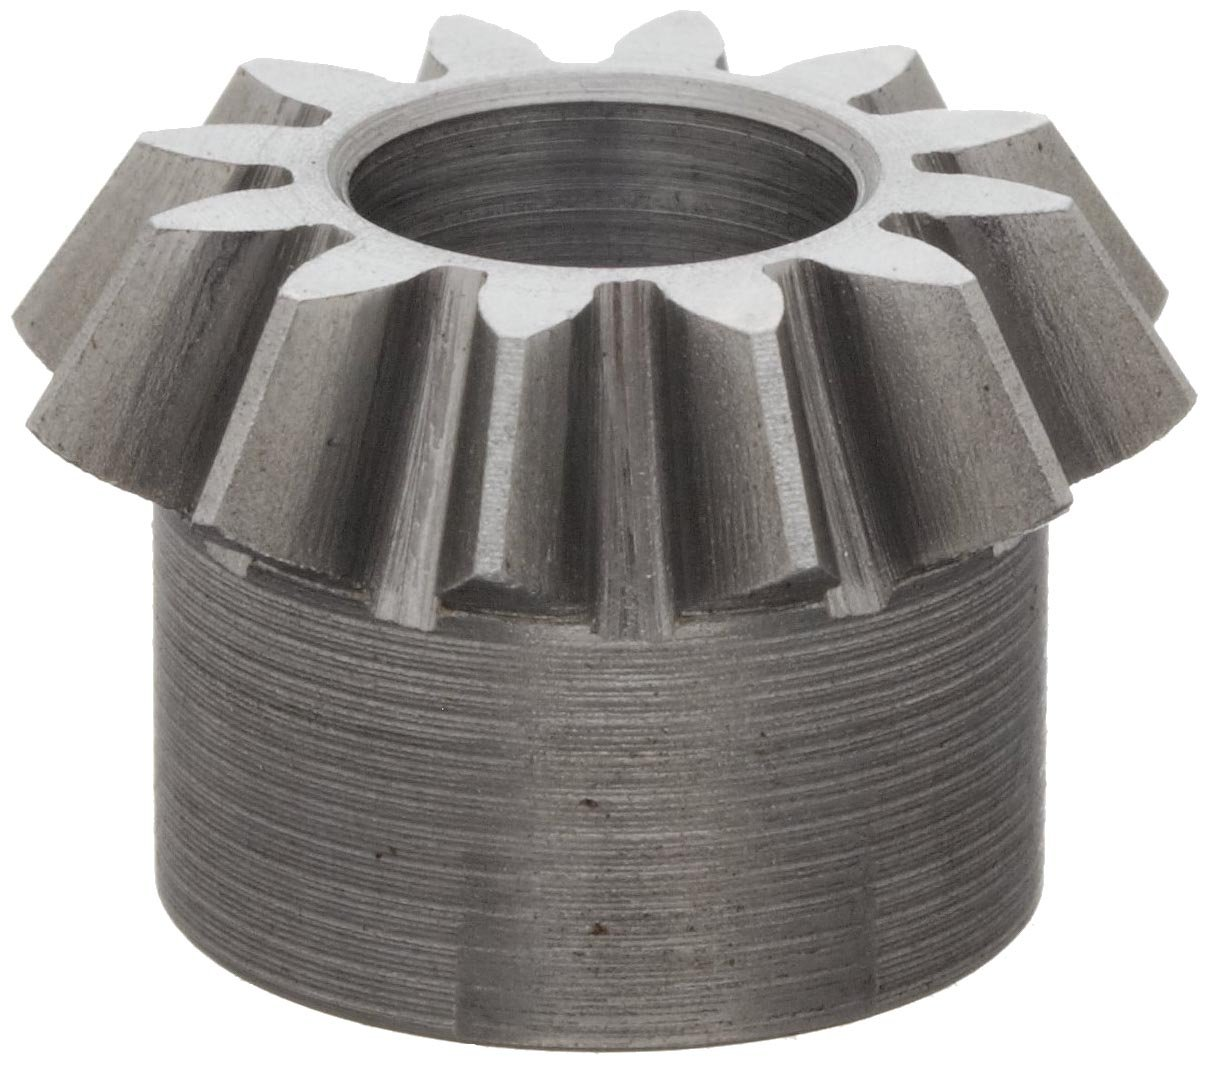 "Boston Gear L148Y-P Bevel Pinion Gear, 2:1 Ratio, 0.375"" Bore, 16 Pitch, 12 Teeth, 20 Degree Pressure Angle, Straight Bevel, Steel"